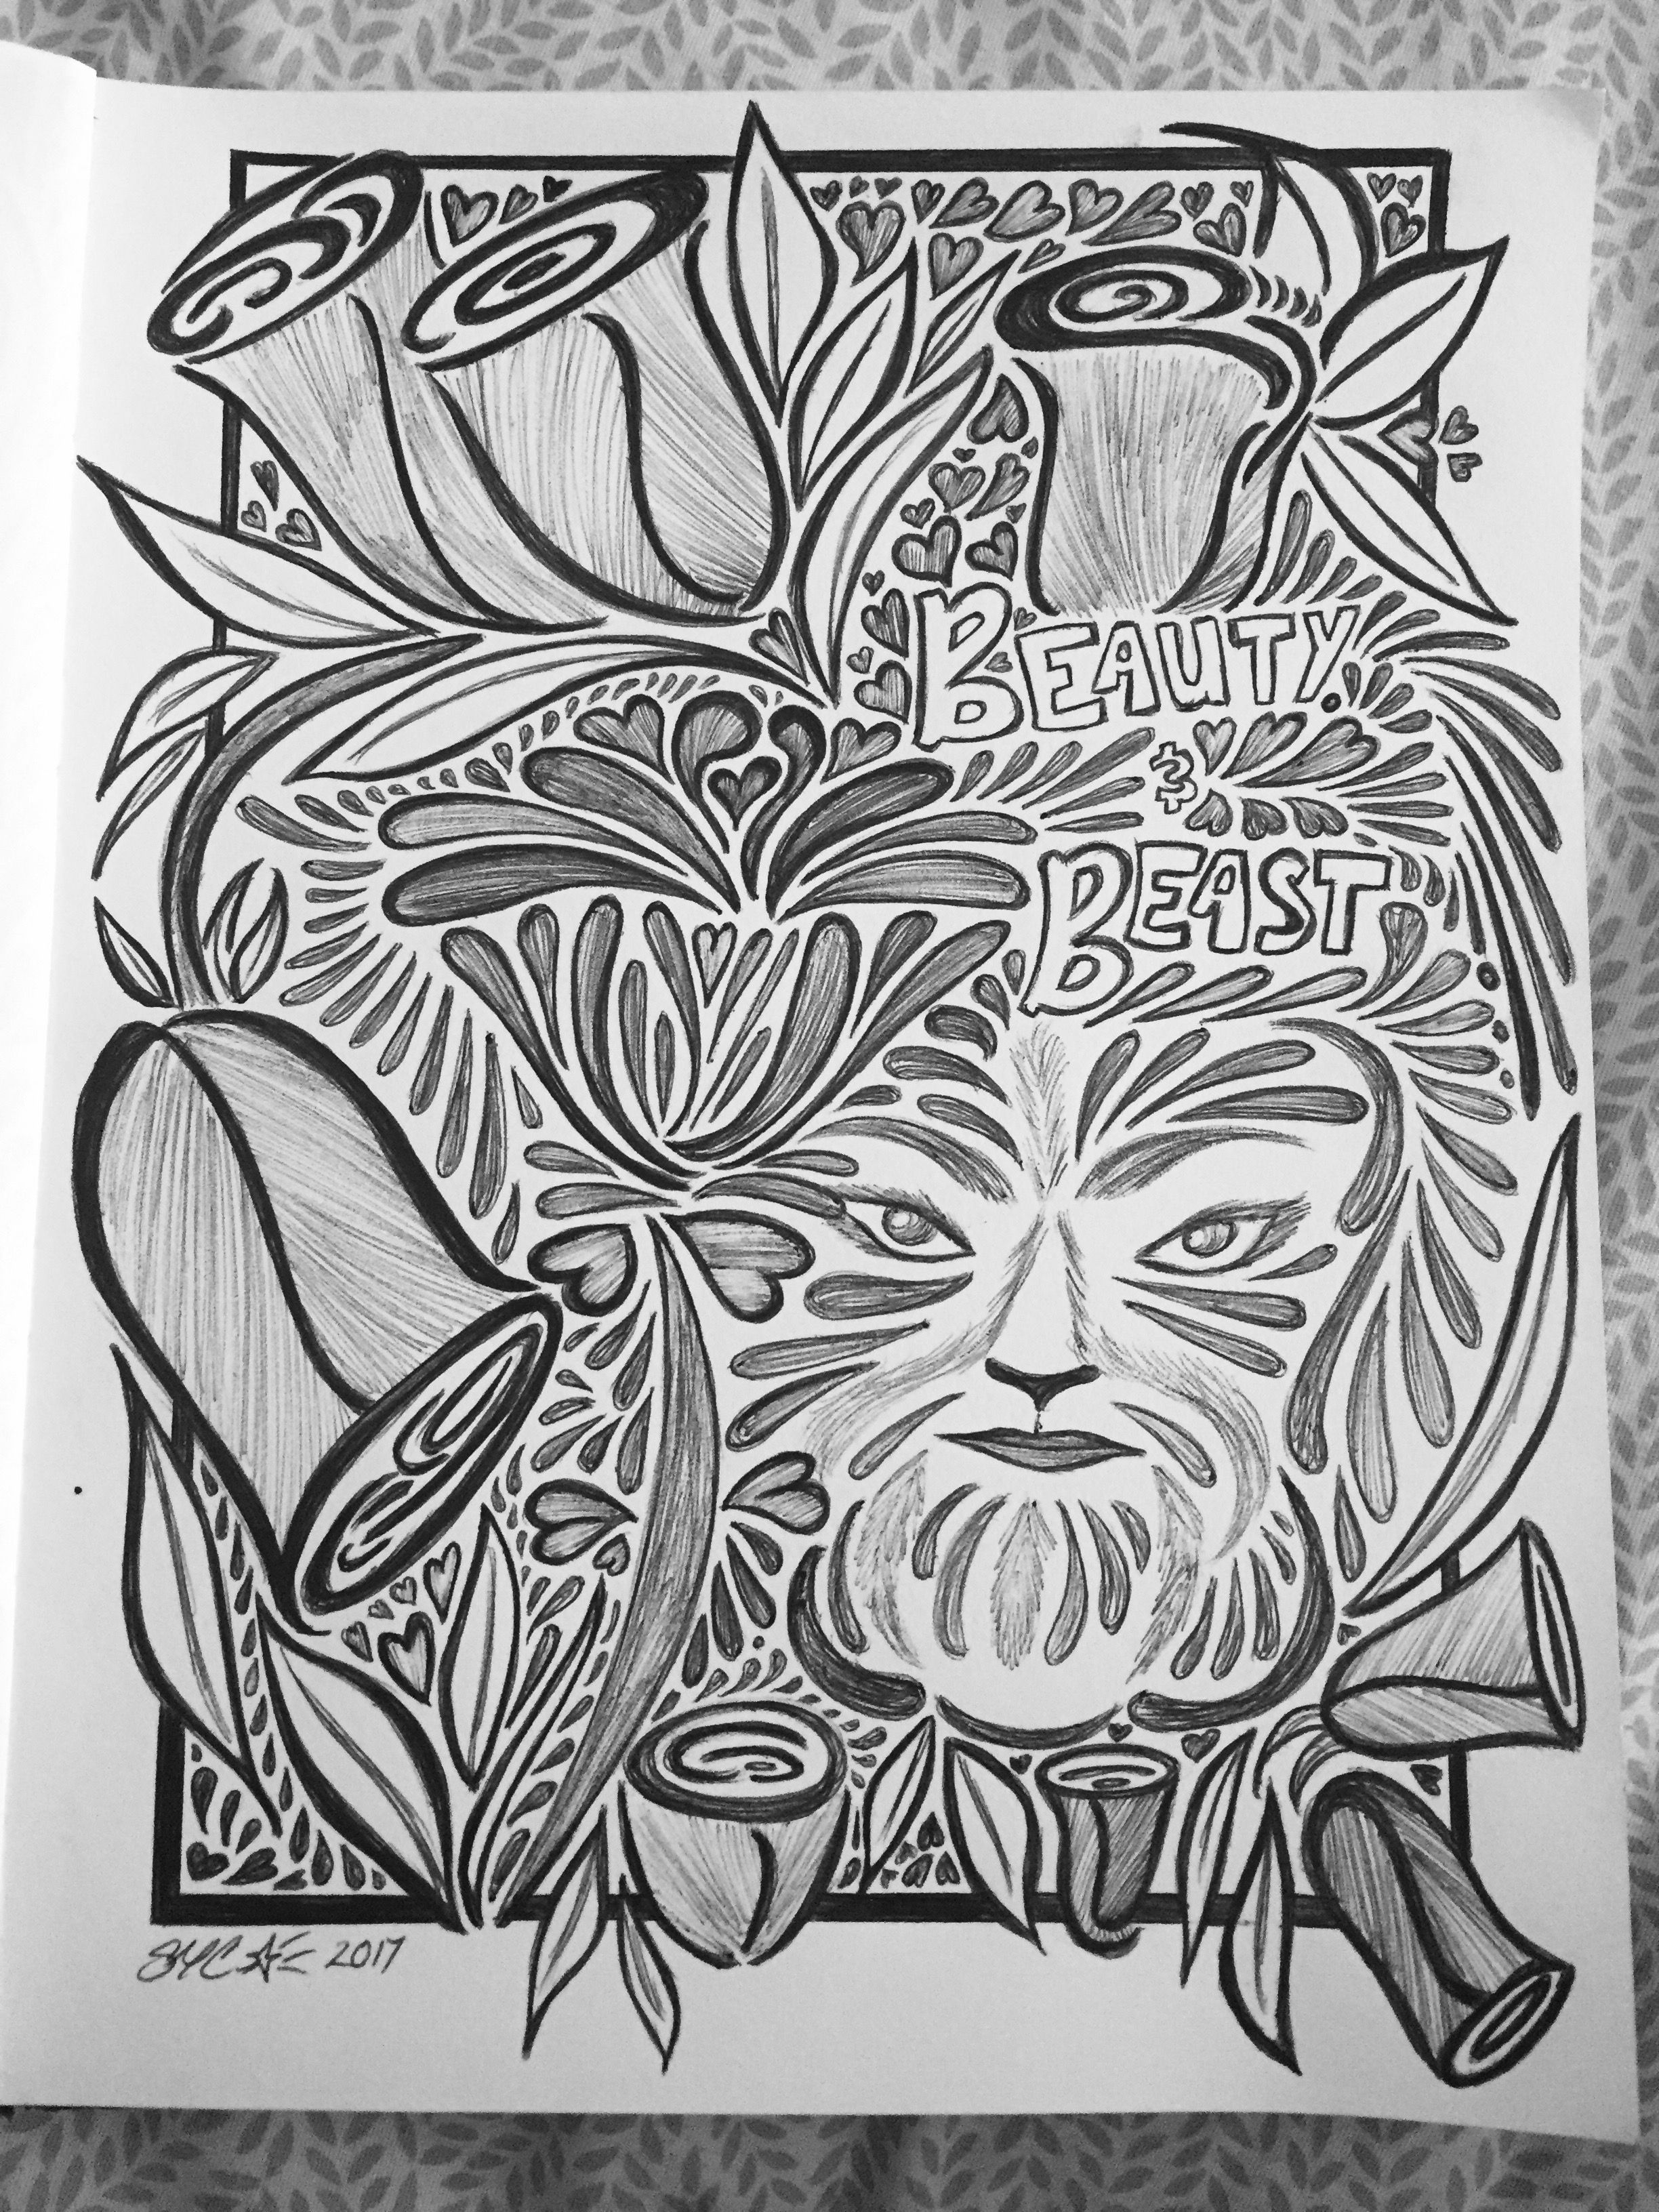 Ooak Beauty And The Beast Sketch By Me Airastar